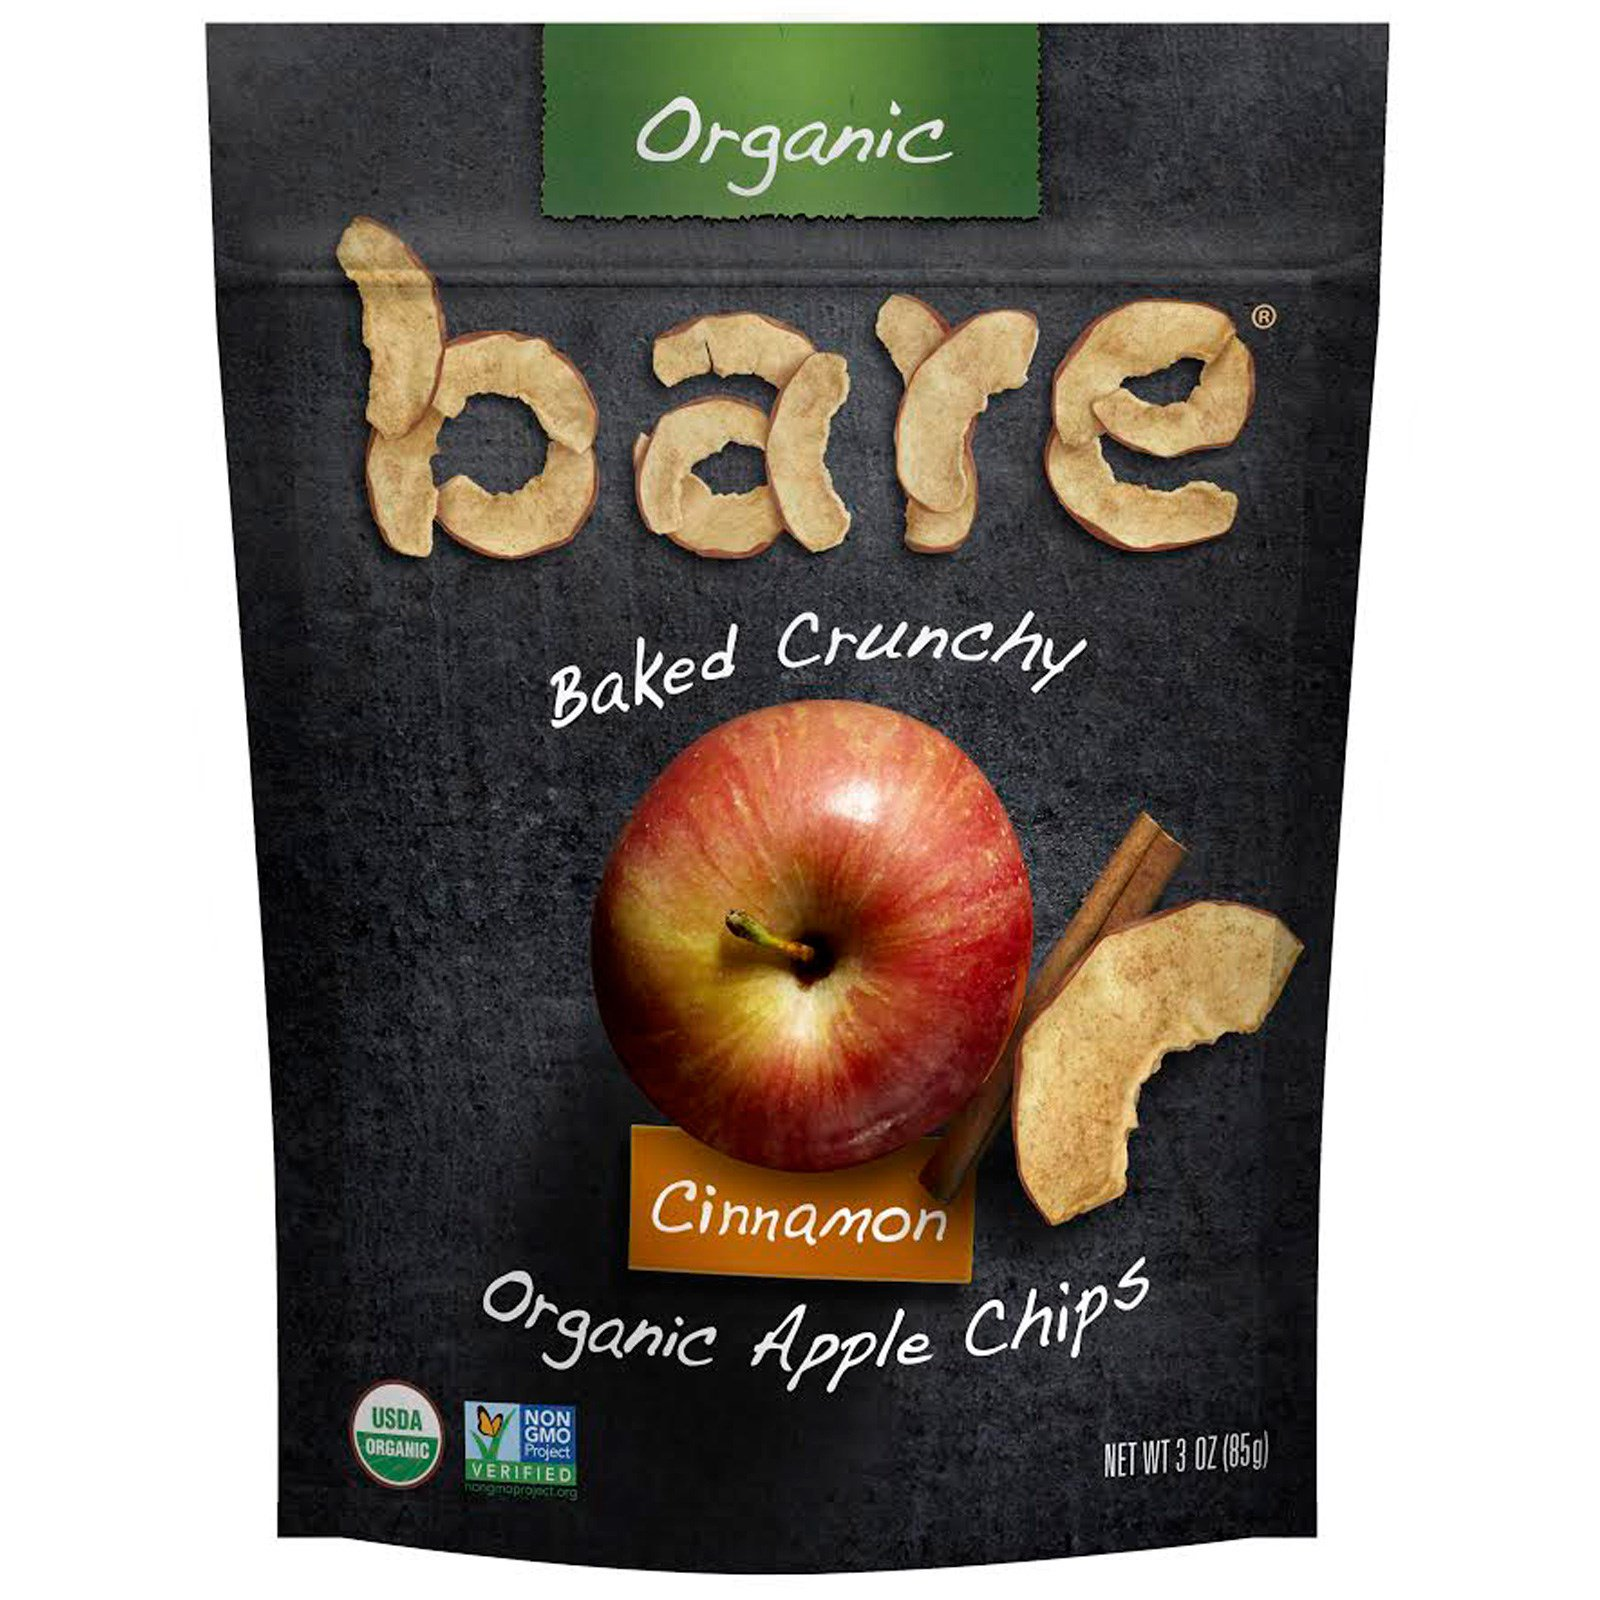 Bare Fruit, Baked Crunchy, Organic Apple Chips, Cinnamon, 3 oz (85 g)